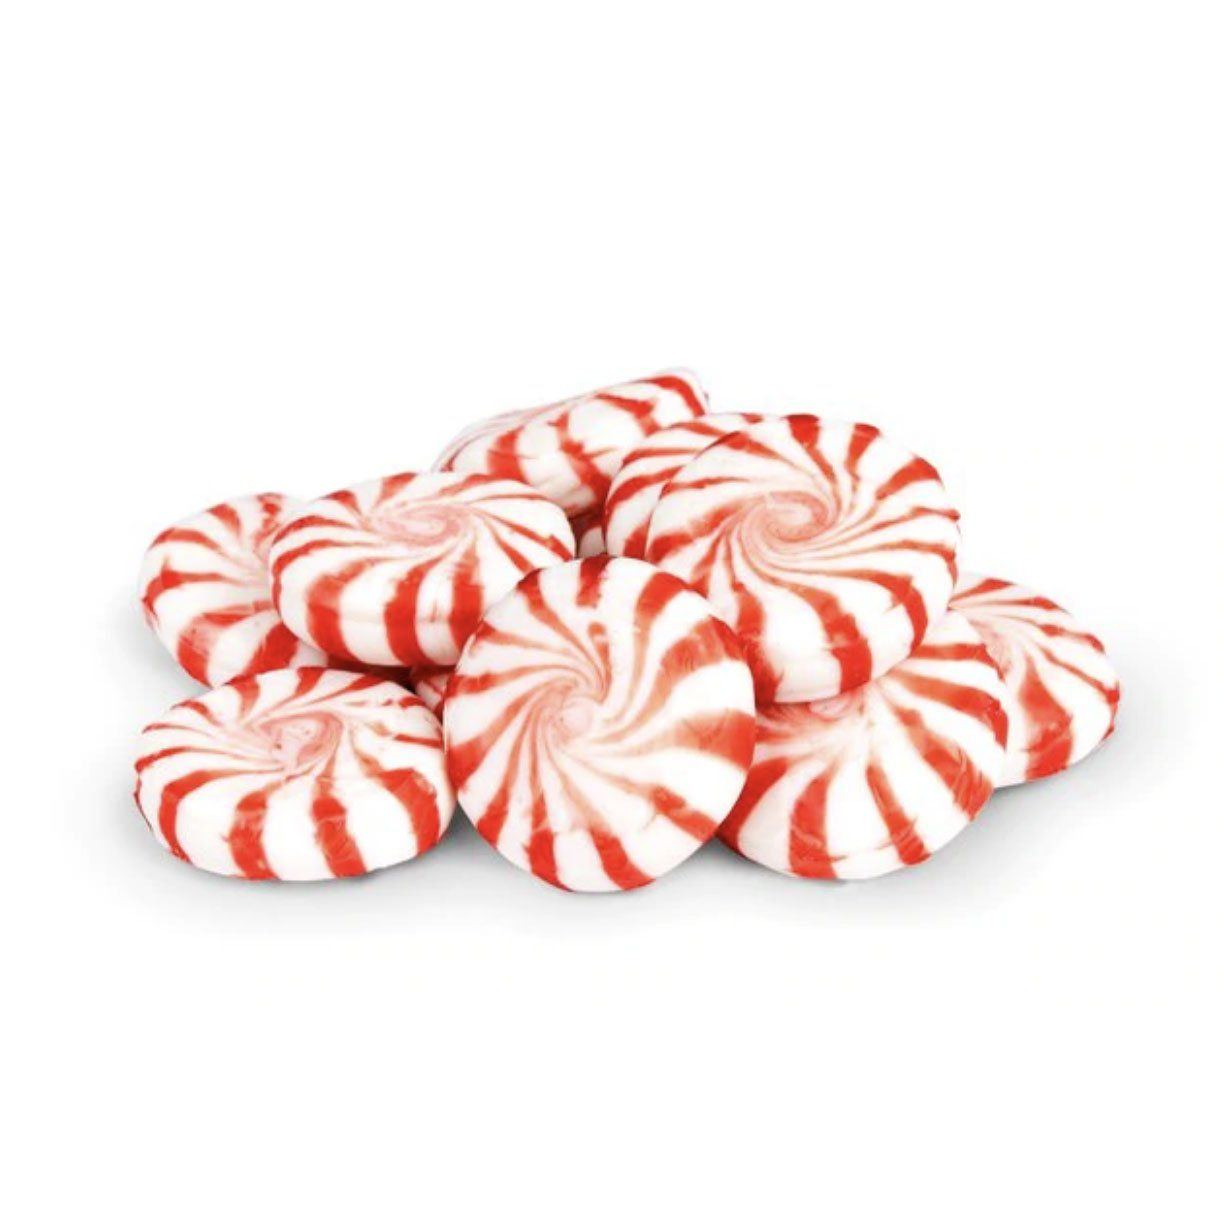 Sugar Free Peppermint Candy - Jackie's Chocolate (4424132722803)